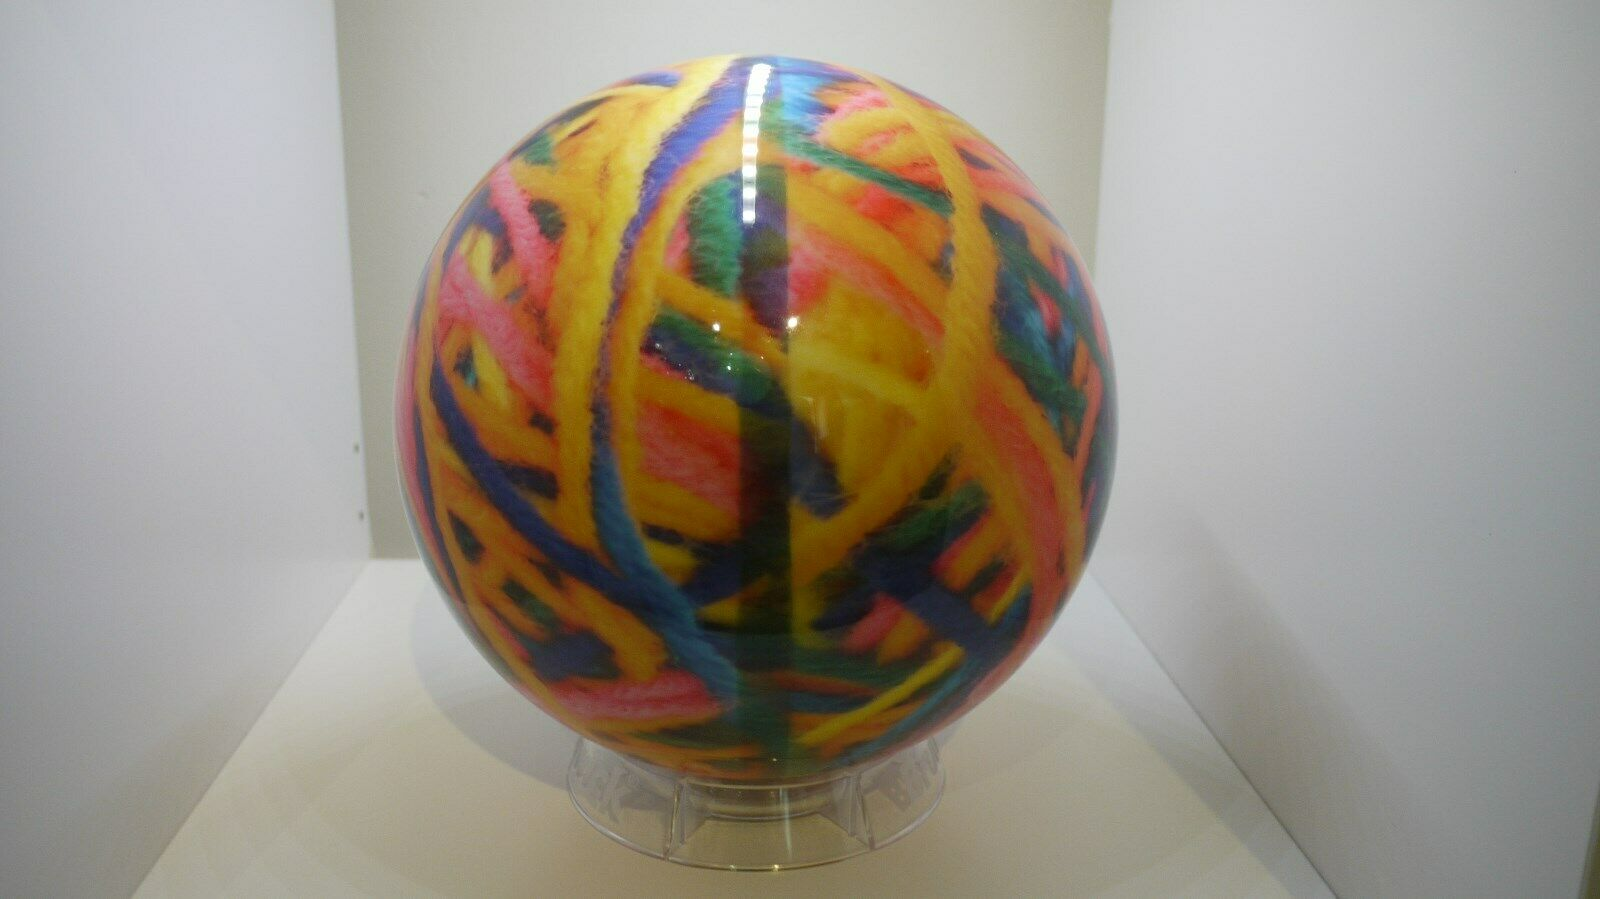 On The Ball Bowlingball Yarn, Polyester 12 lbs lbs lbs ungebohrt d1afb7